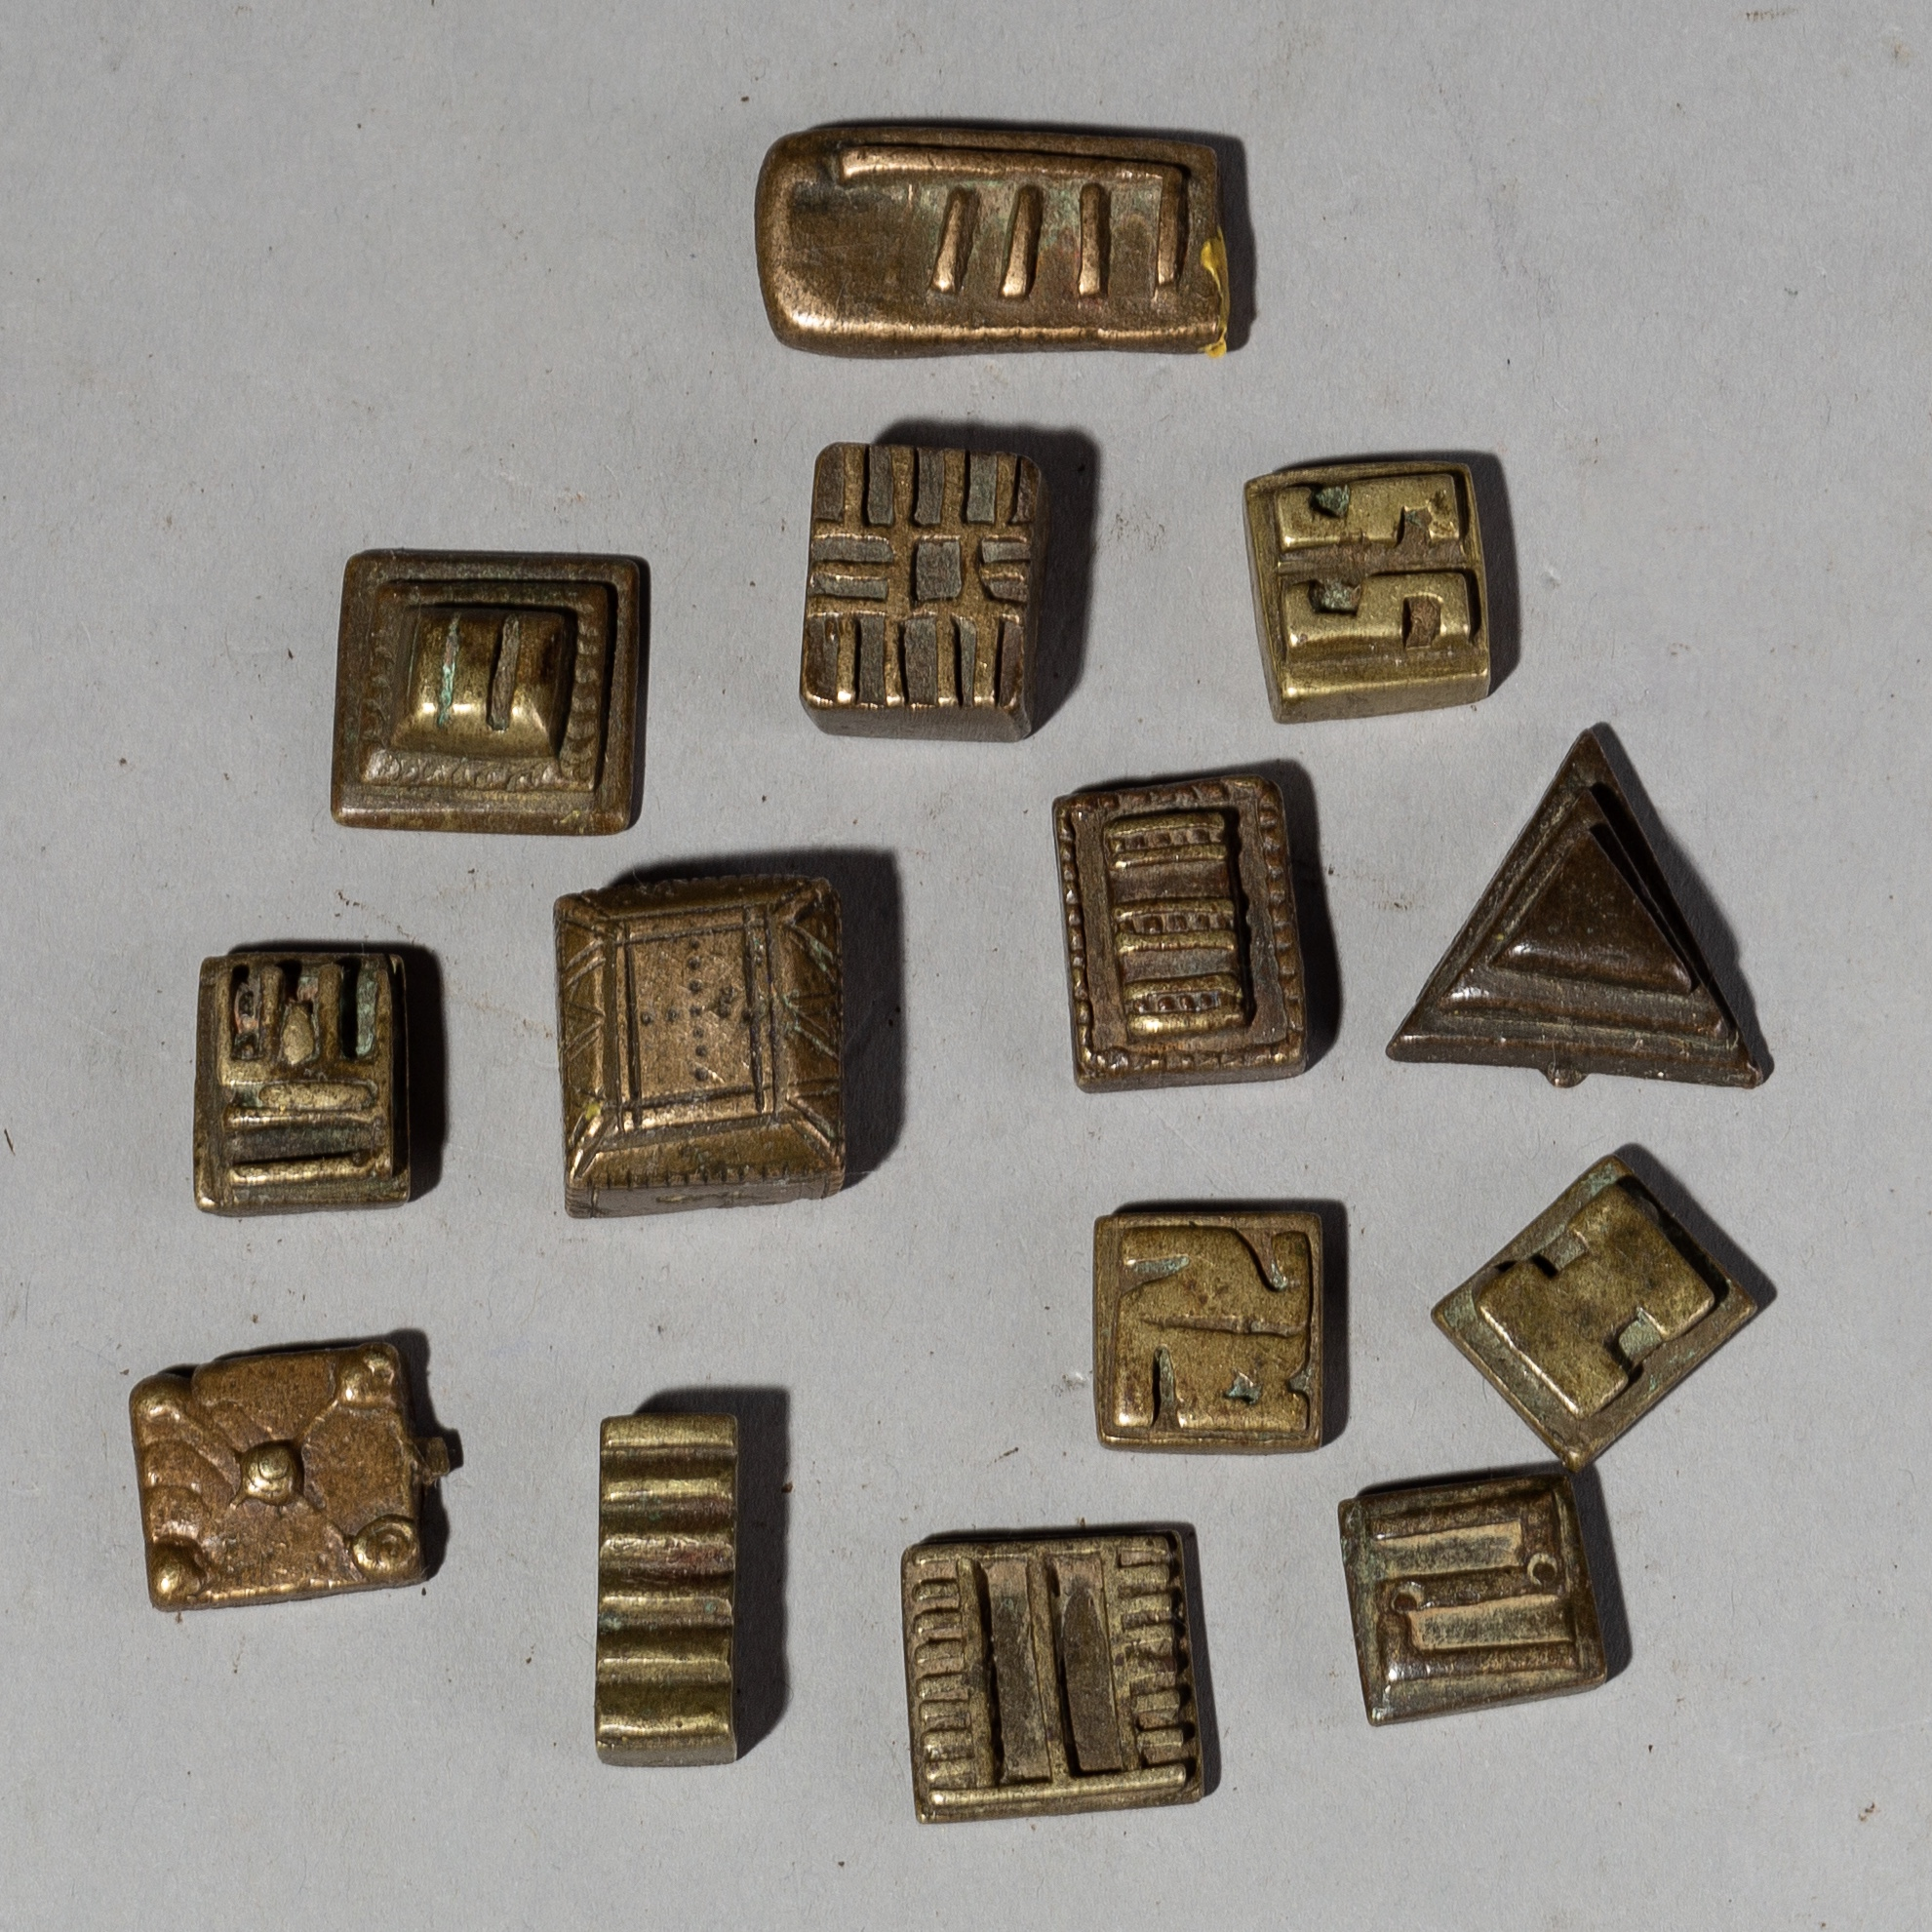 ( SOLD- LY ) AN ECLECTIC  GROUP OF 14 MEDIUM SIZED AKAN GOLD WEIGHTS( No 2018 )